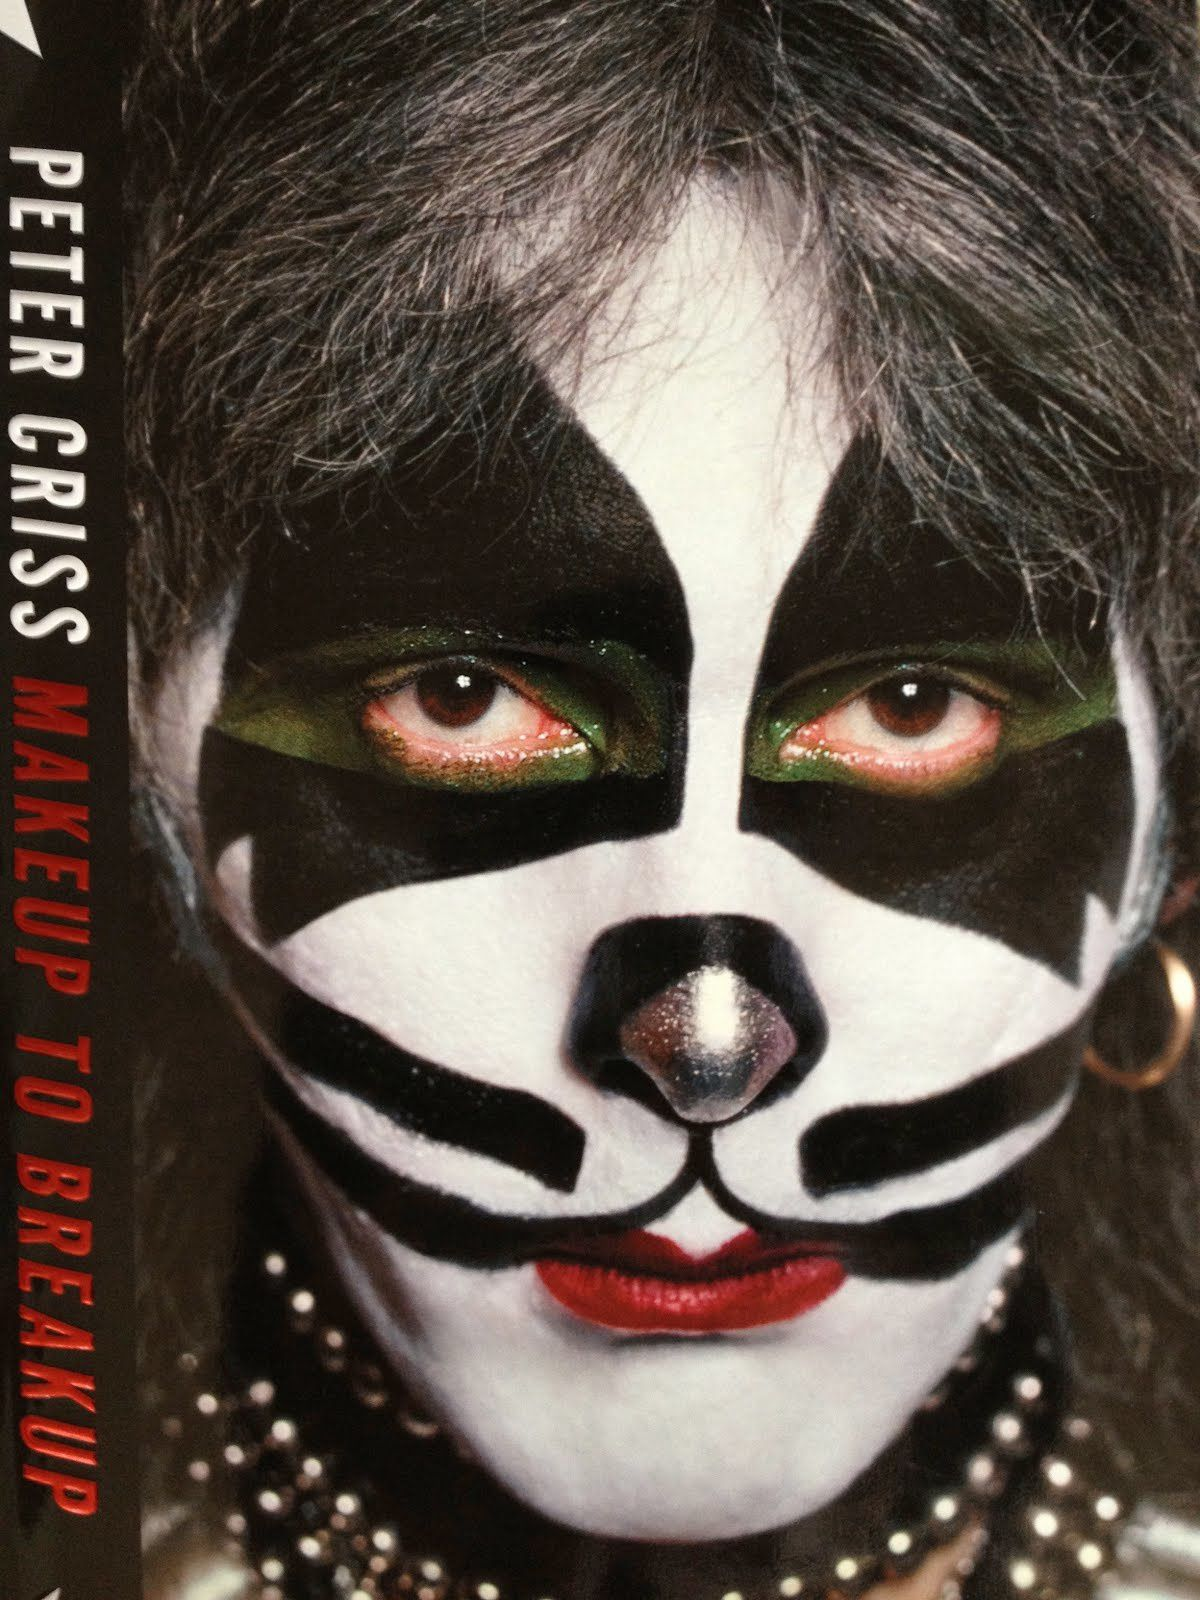 Peter Criss, KISS